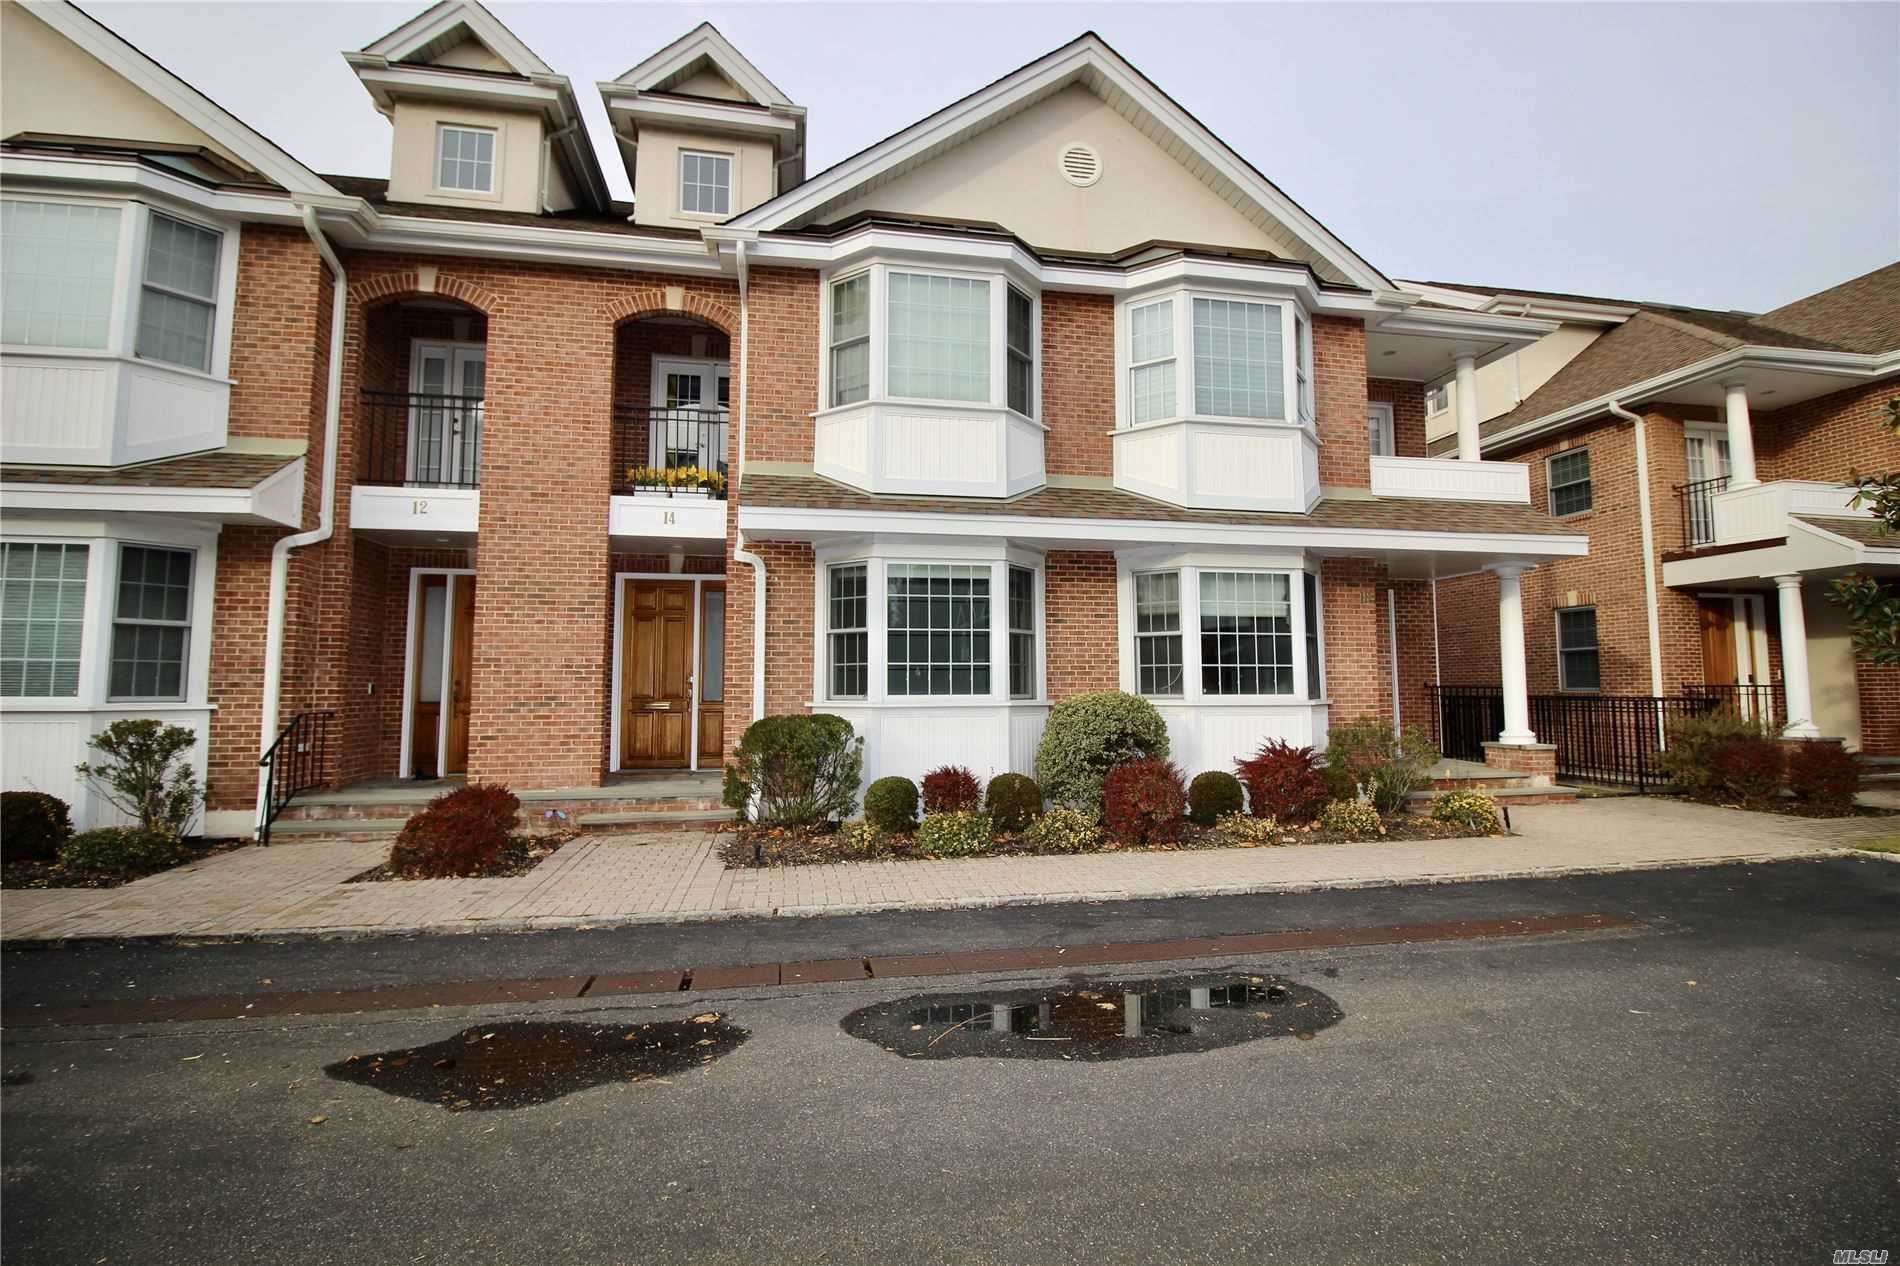 14 Portico Court, Great Neck, NY 11021 - MLS#: 3183863